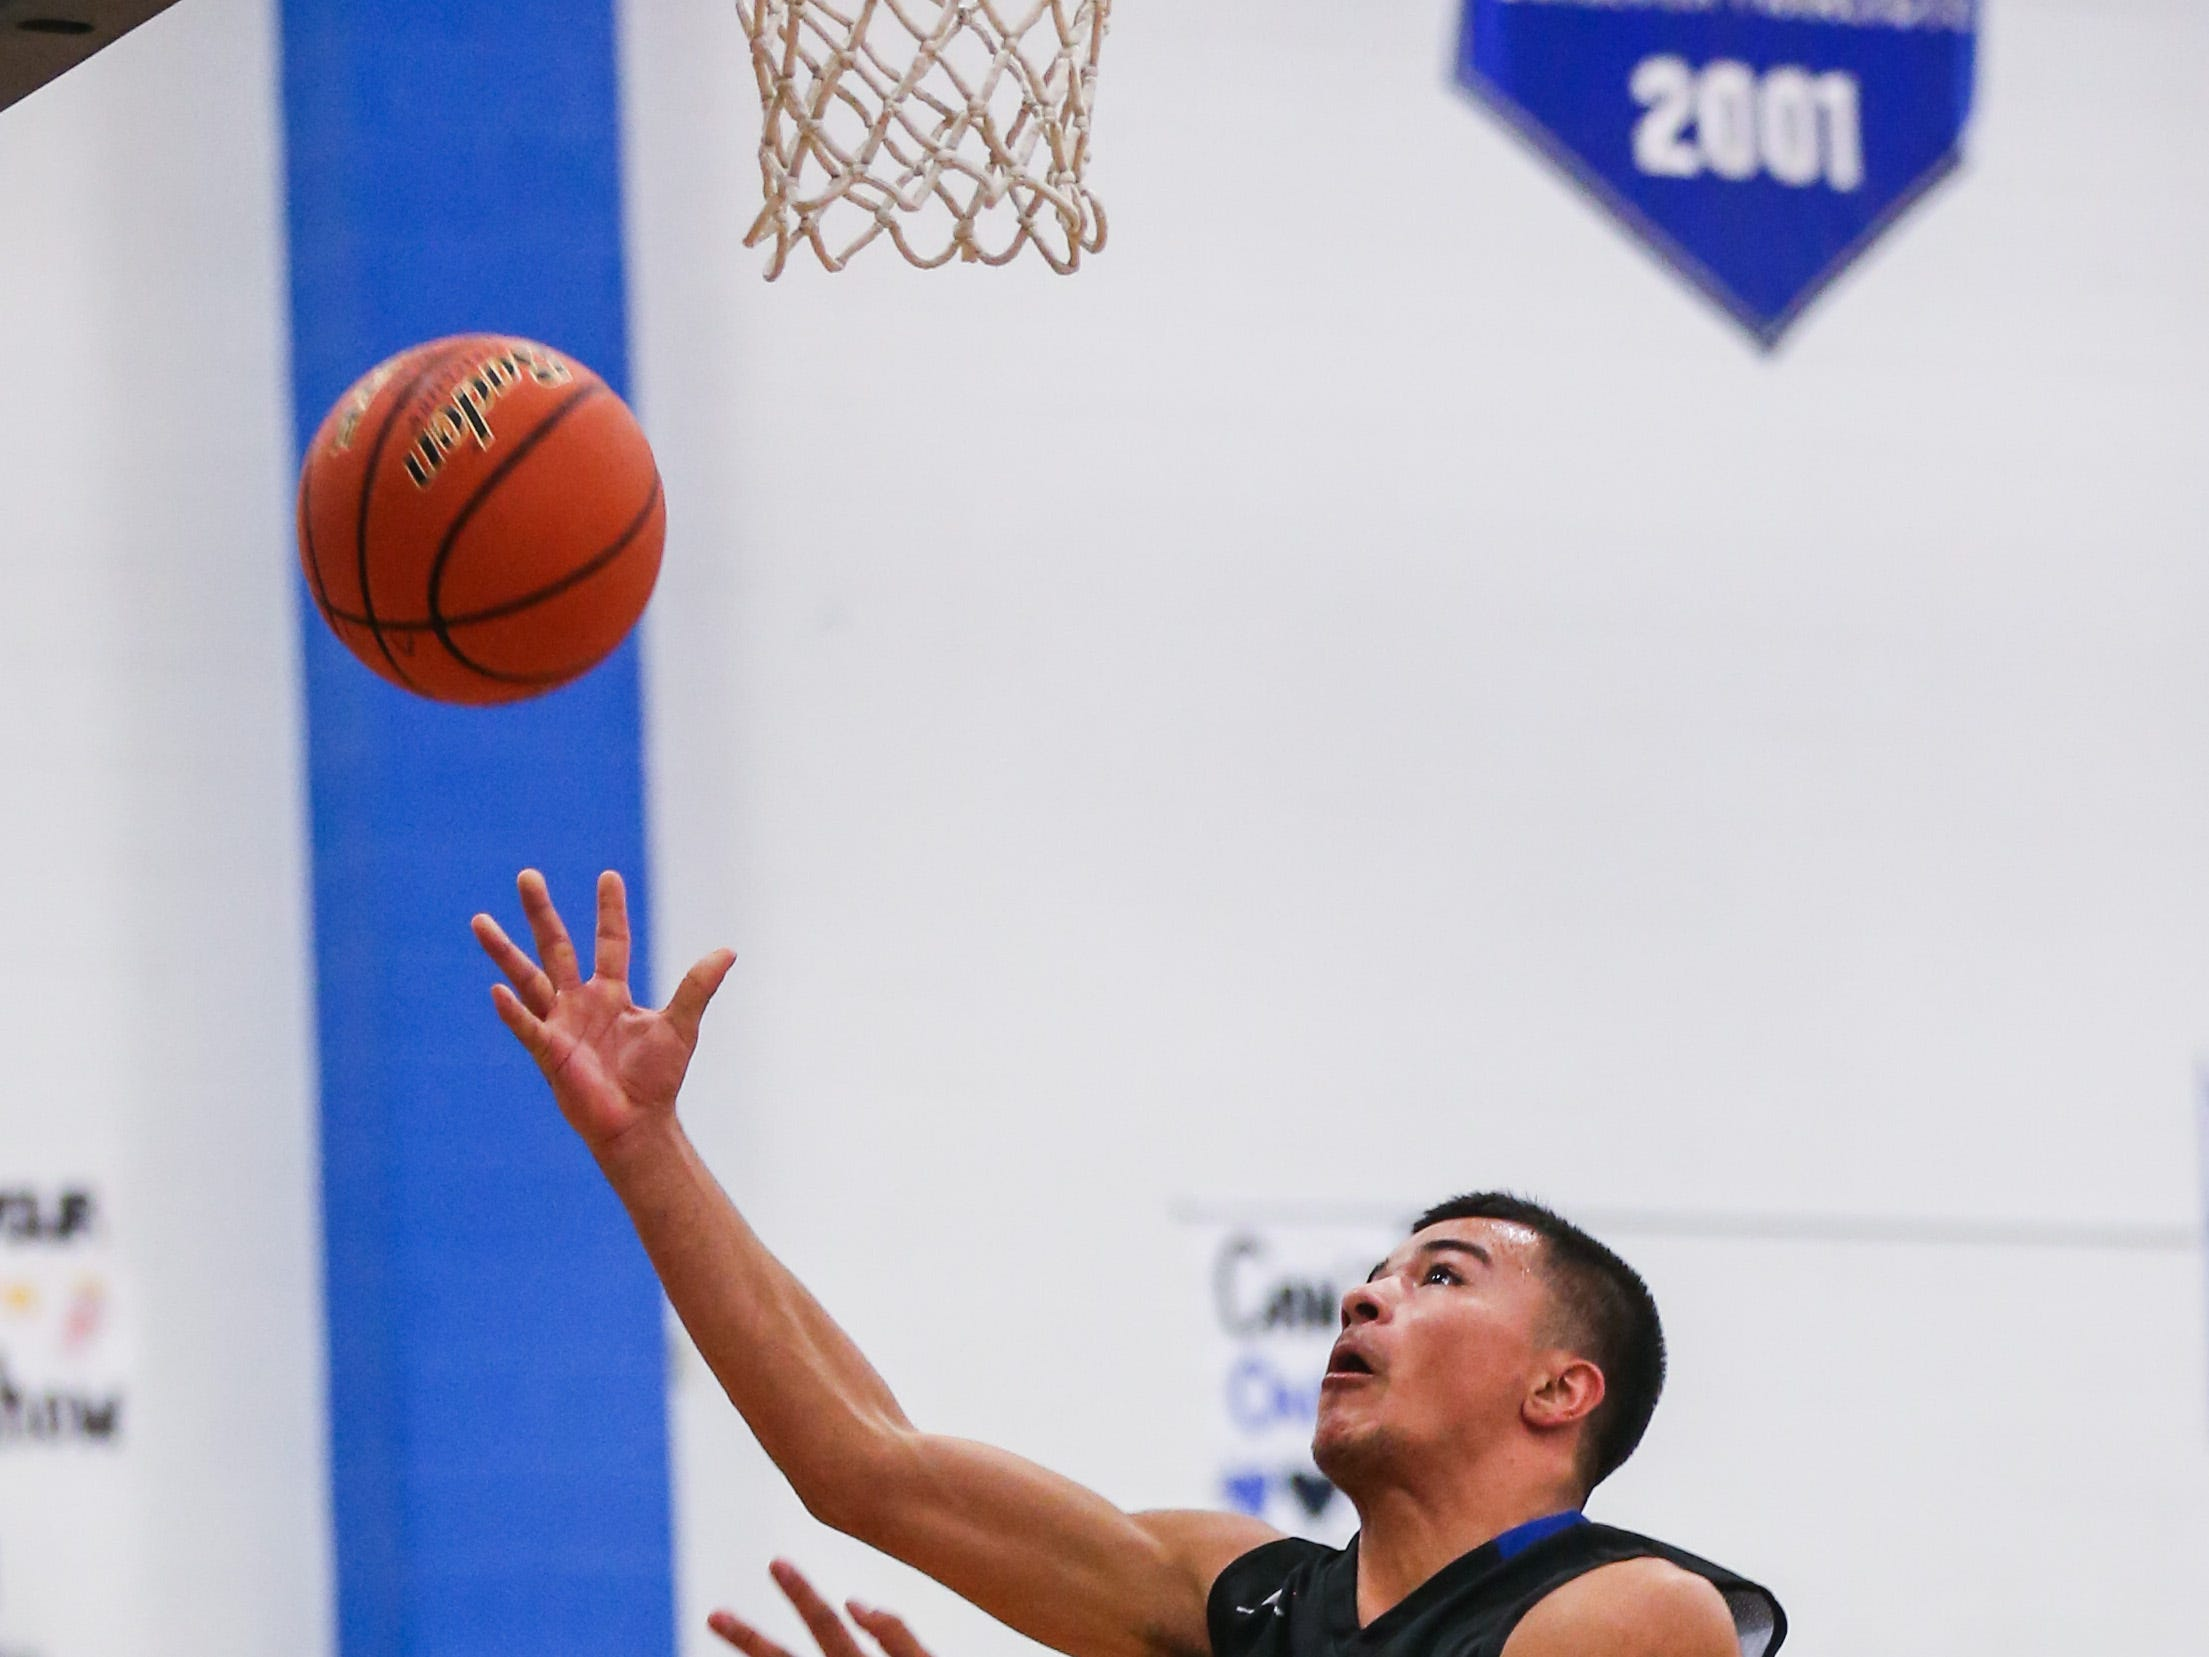 Lake View's Johnny Espinosa jumps for the rebound against Del Valle during the Doug McCutchen Basketball Tournament Thursday, Nov. 29, 2018, at Central High School.